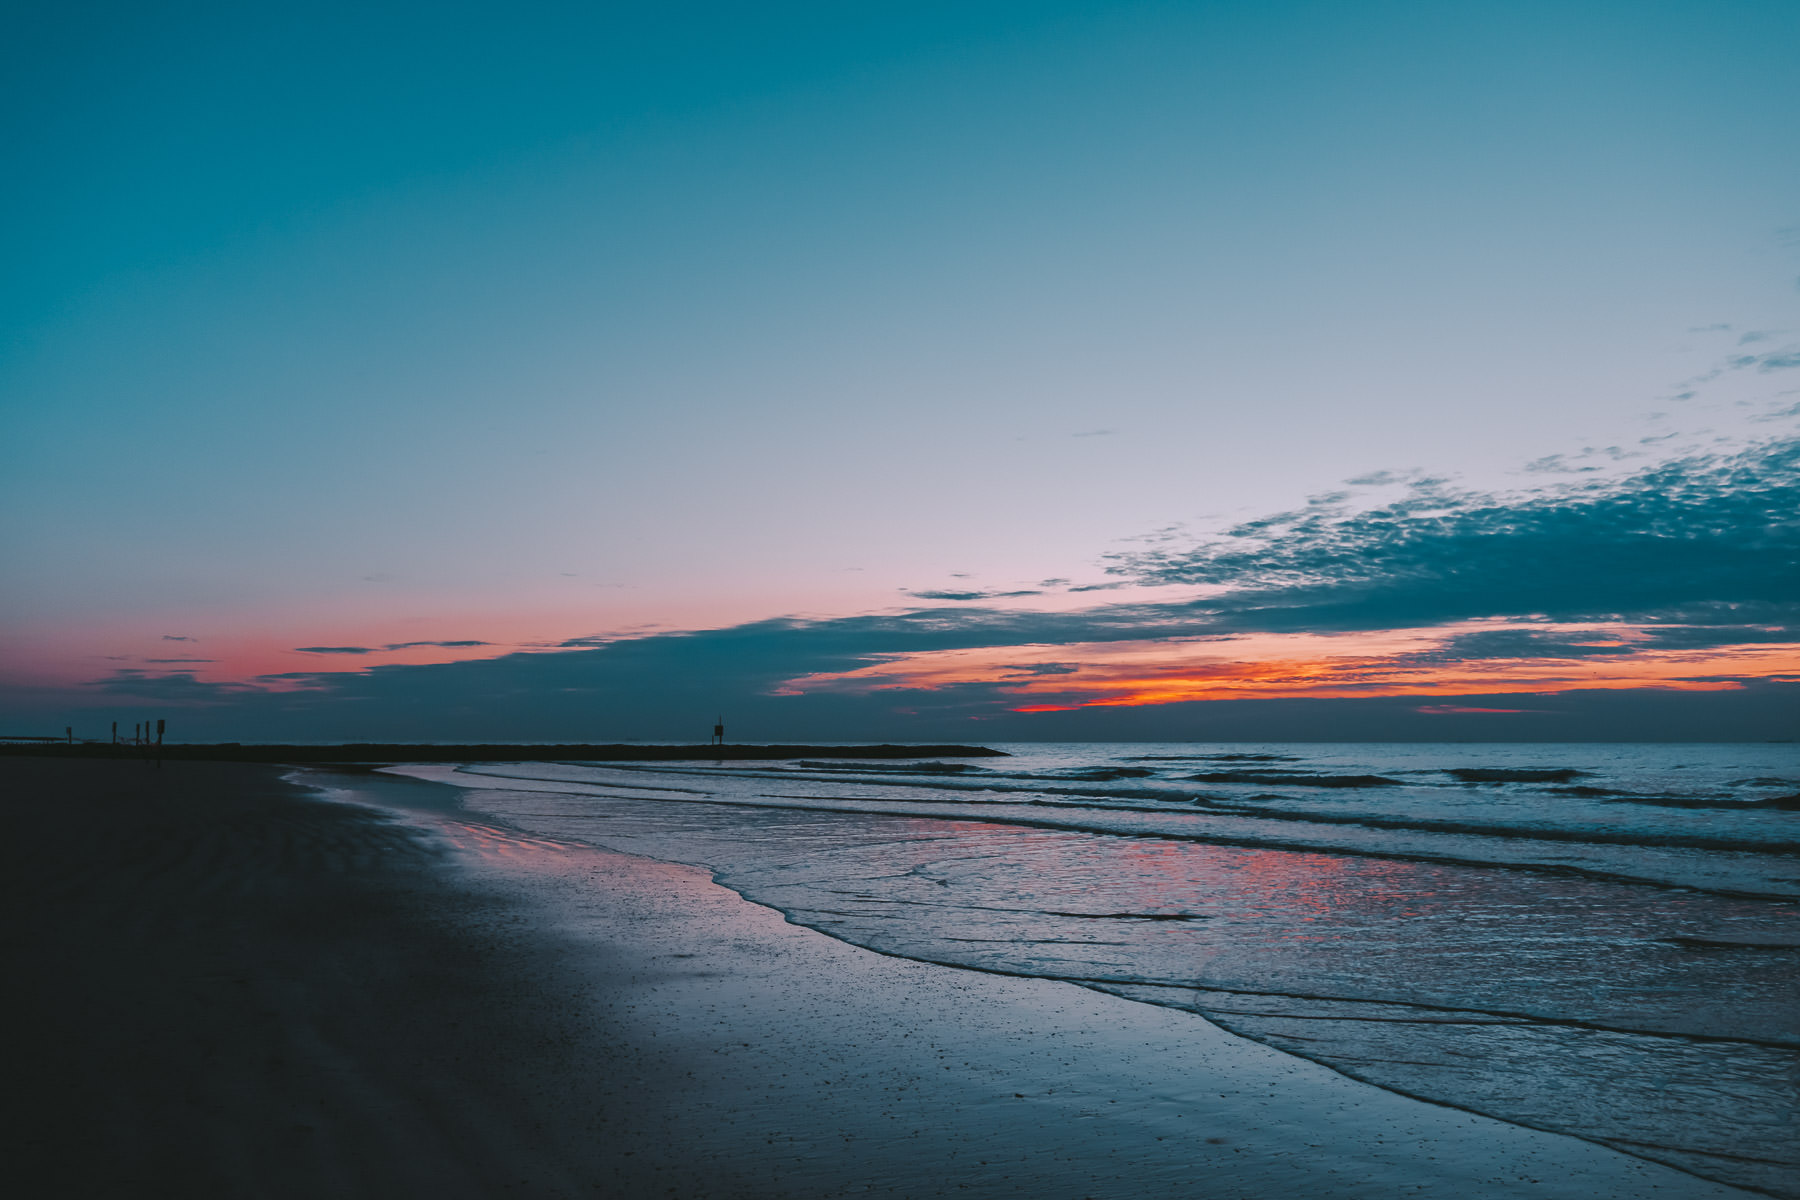 The first light of day on a Galveston,Texas, beach.